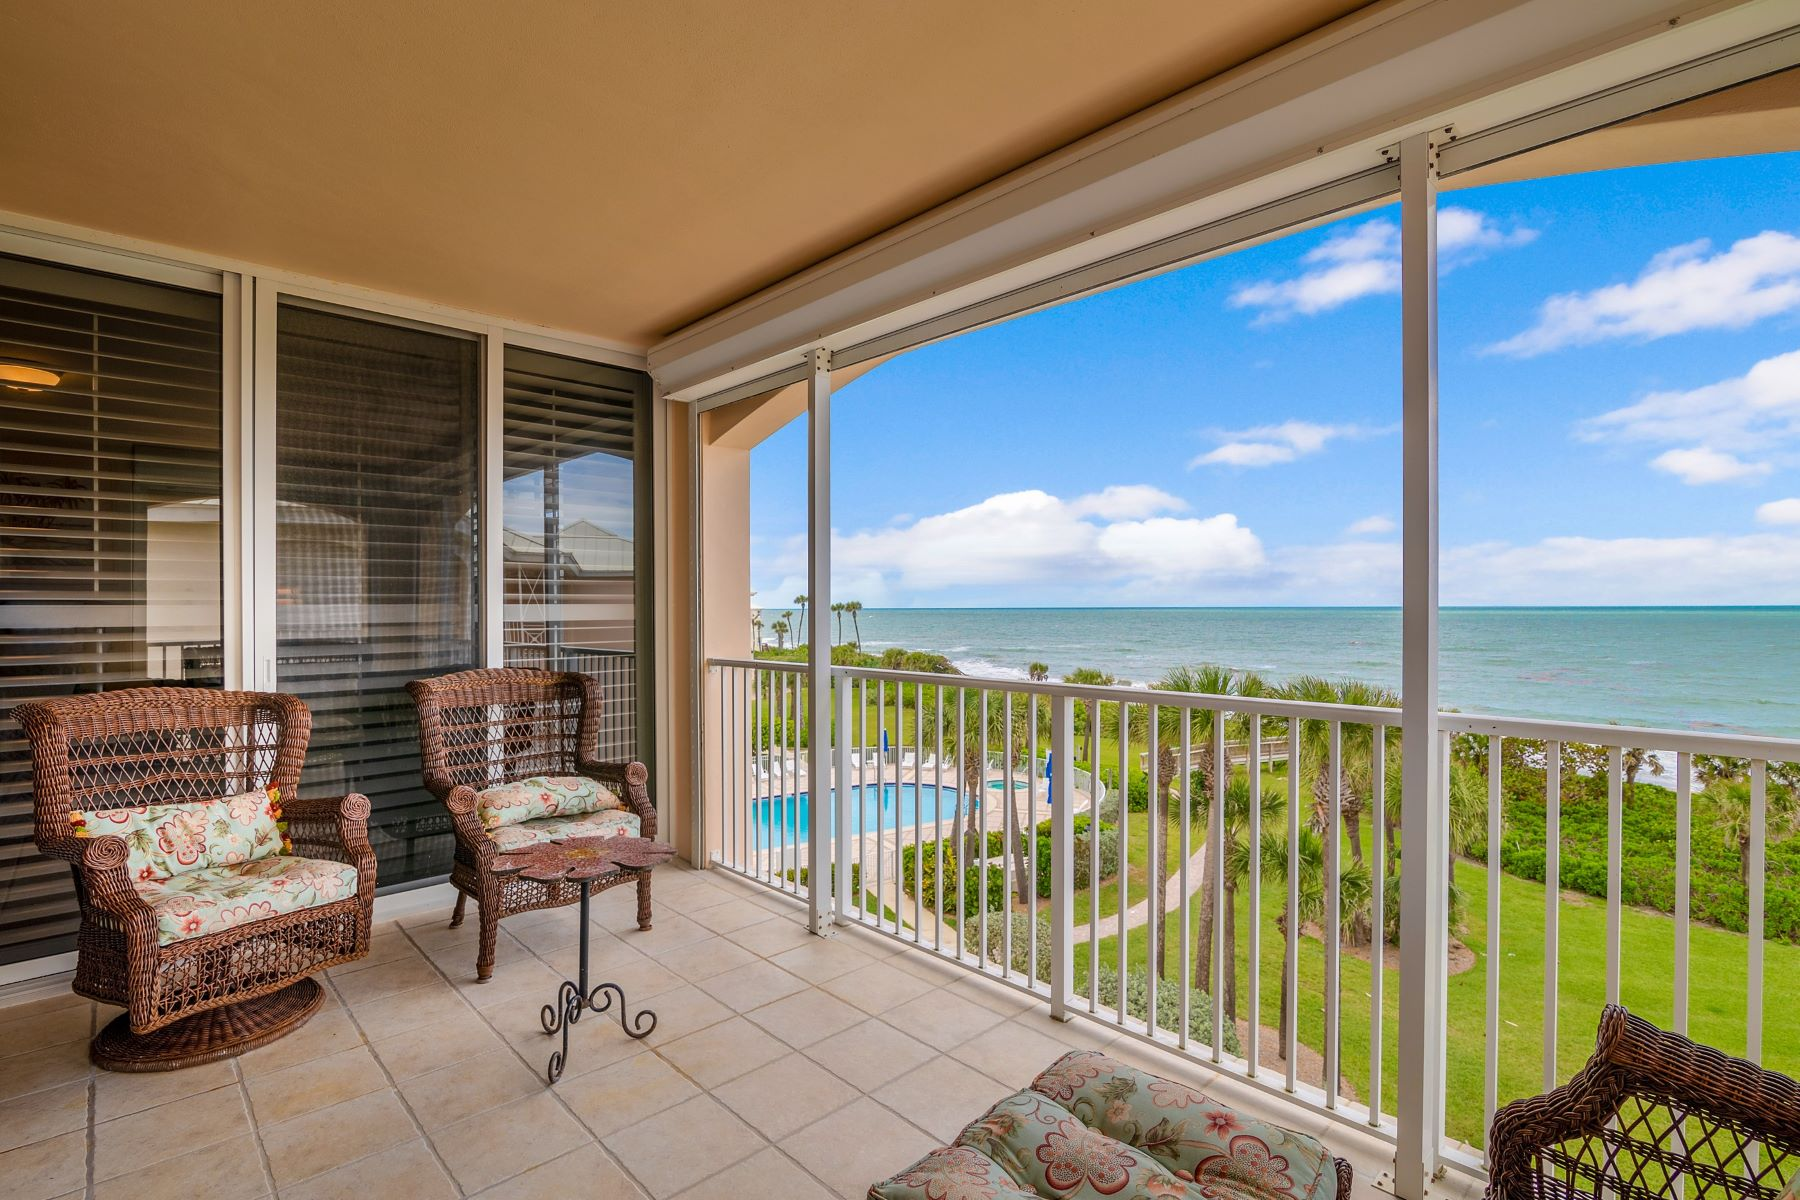 Property for Sale at 8866 N Sea Oaks Way, 212 Vero Beach, Florida 32963 United States